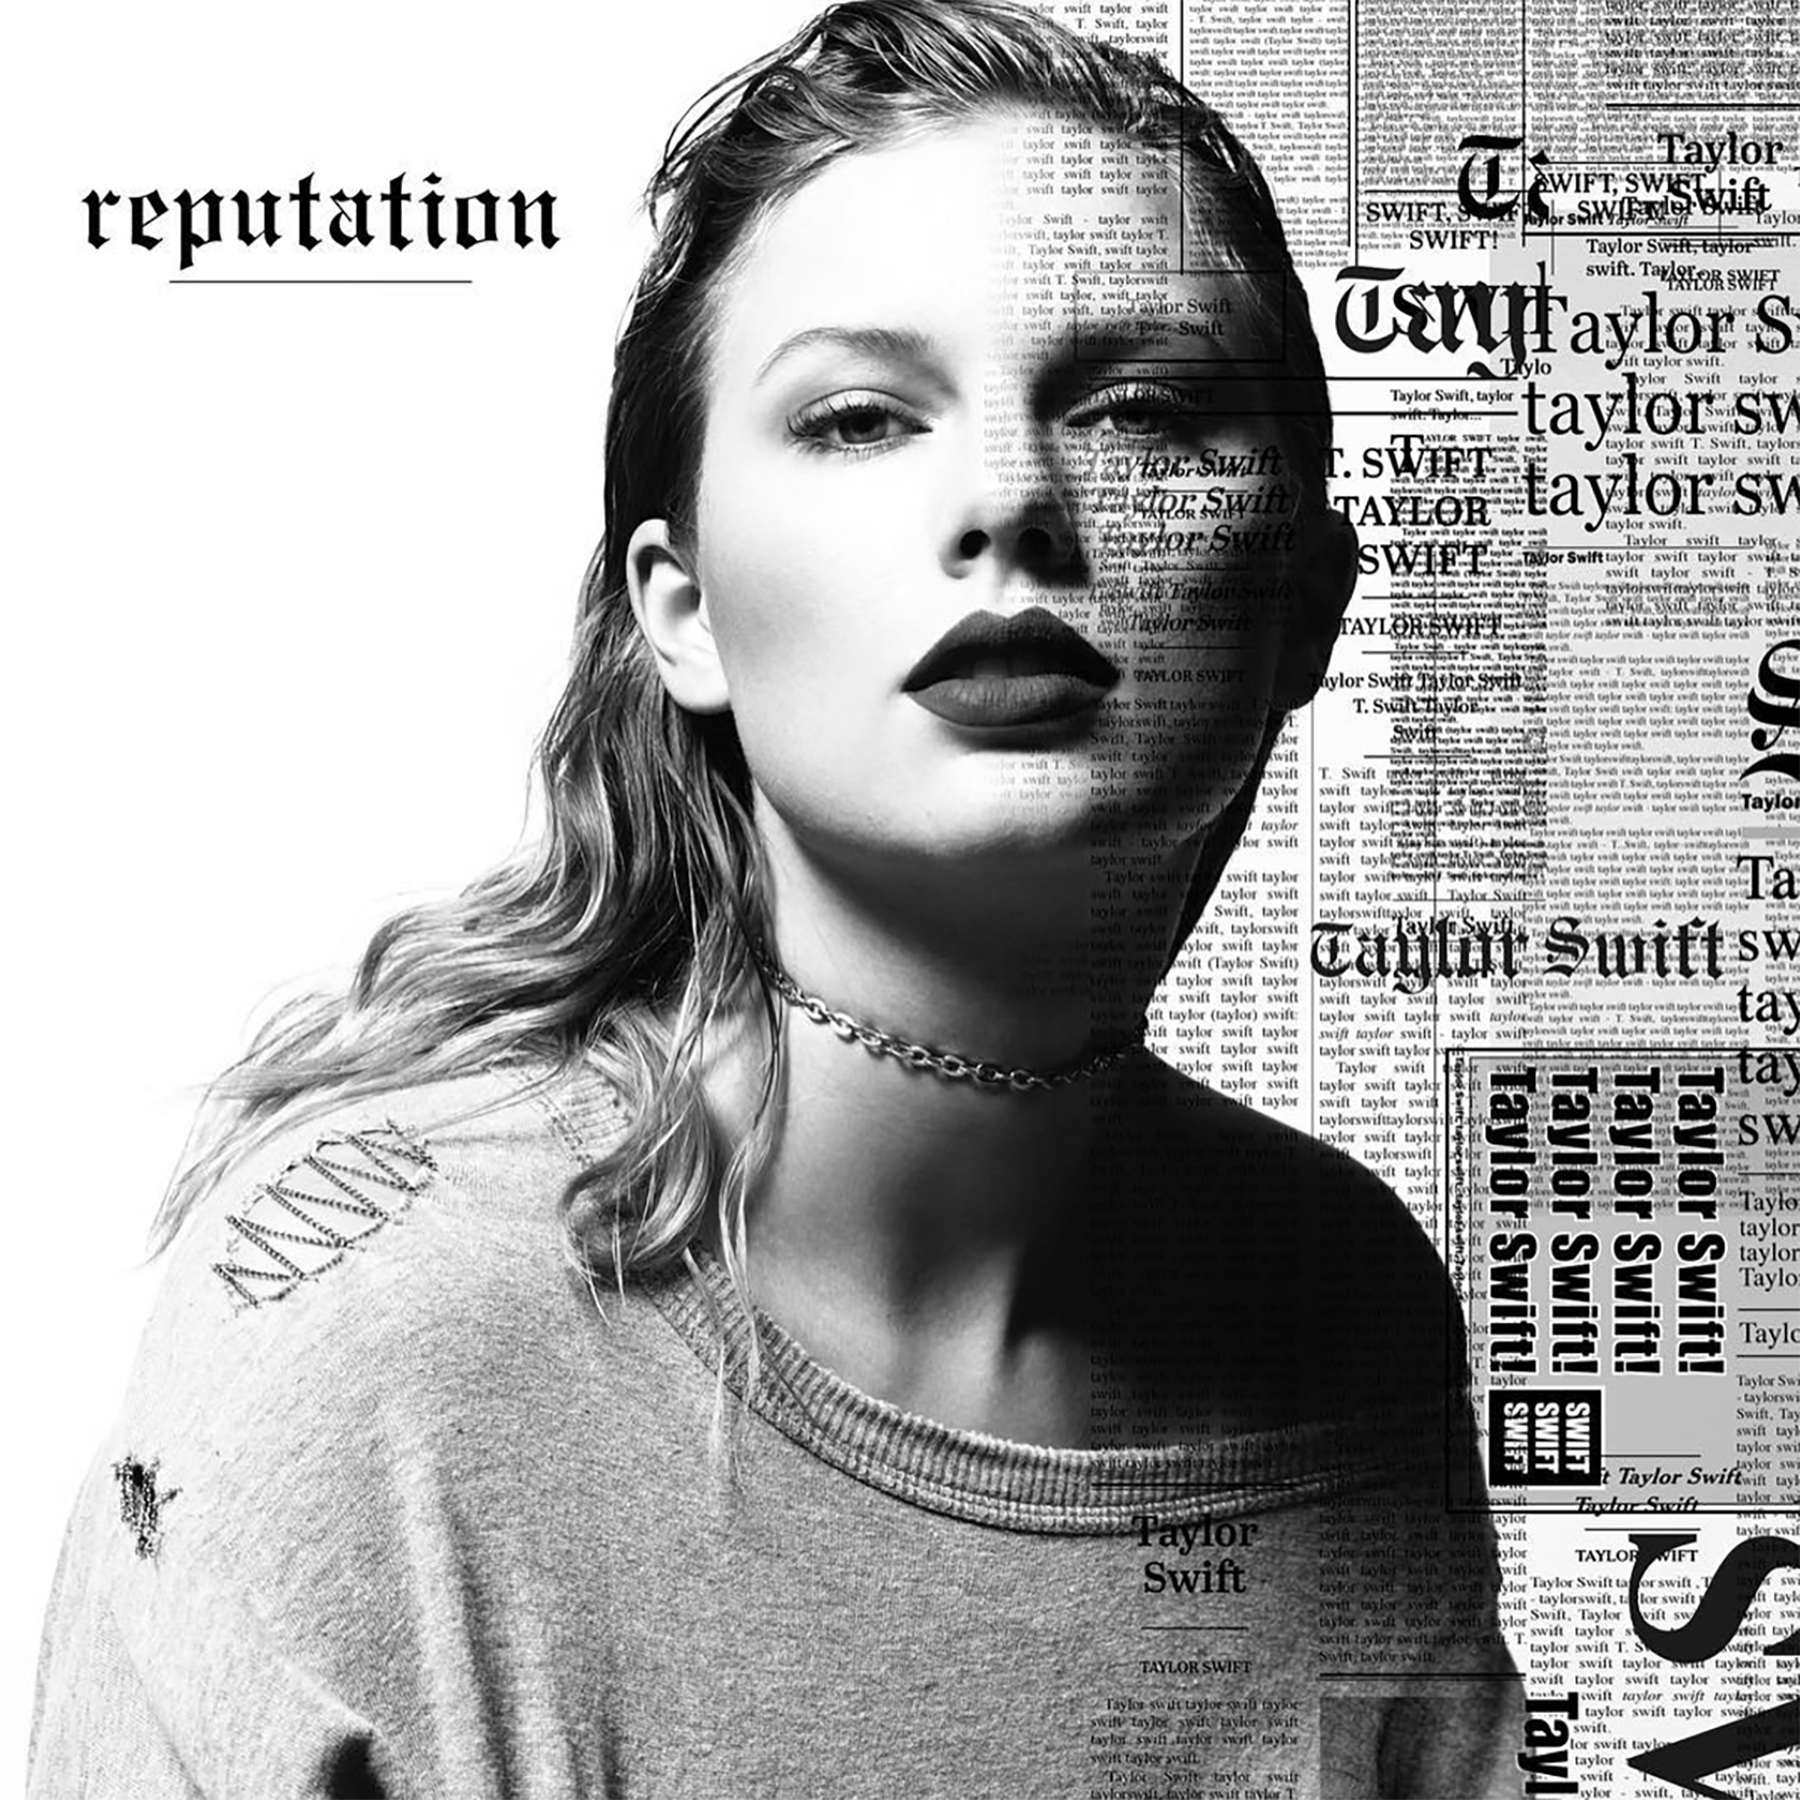 taylor-swift-reputation1